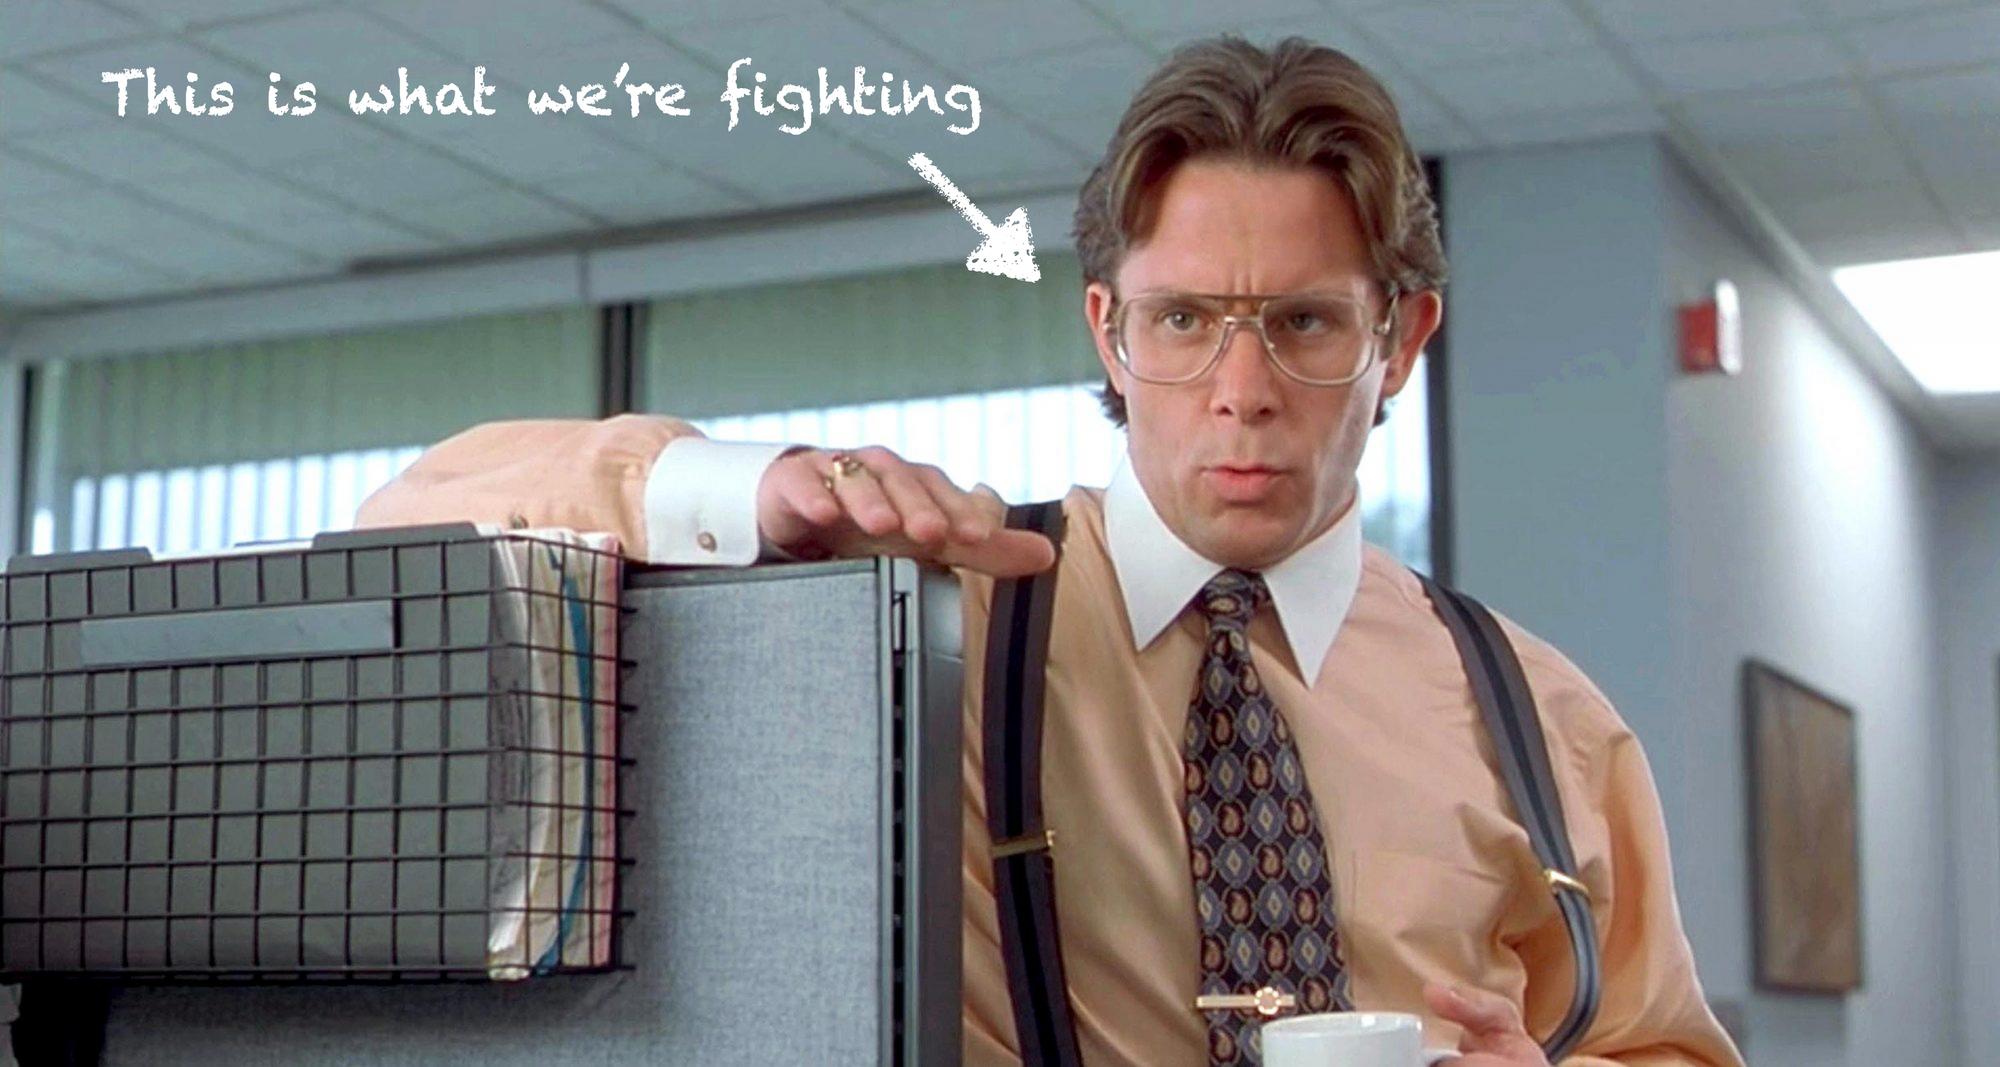 Our mission is to kill micromanagement